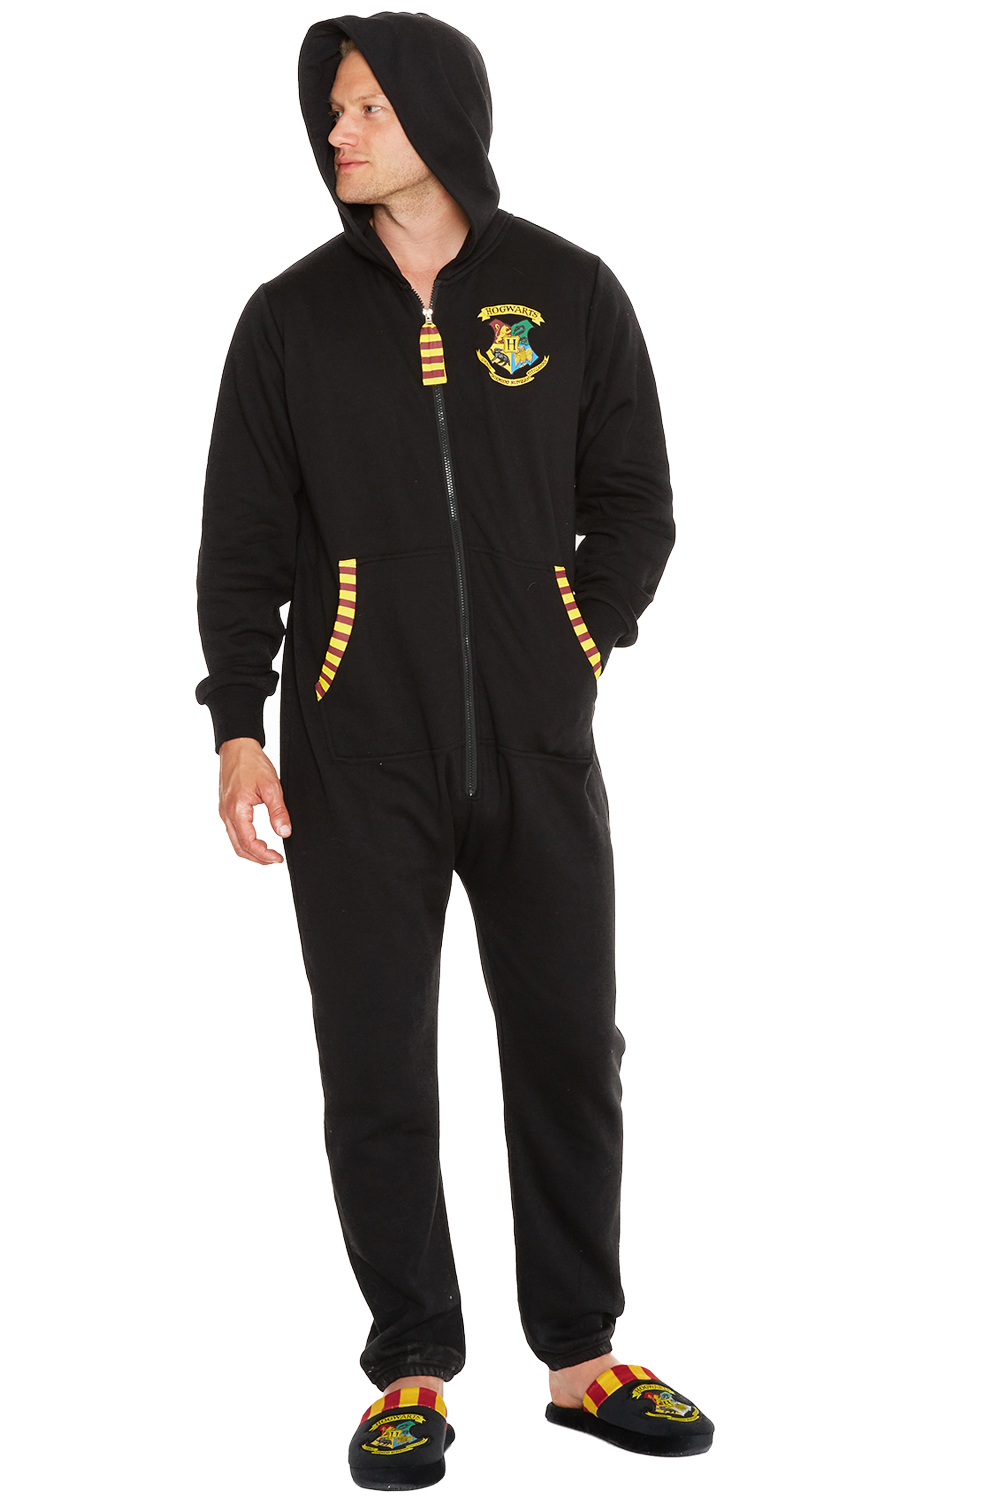 Adults-Official-Harry-Potter-Hogwarts-Crest-Zip-Up-Hooded-Jumpsuit-All-In-One